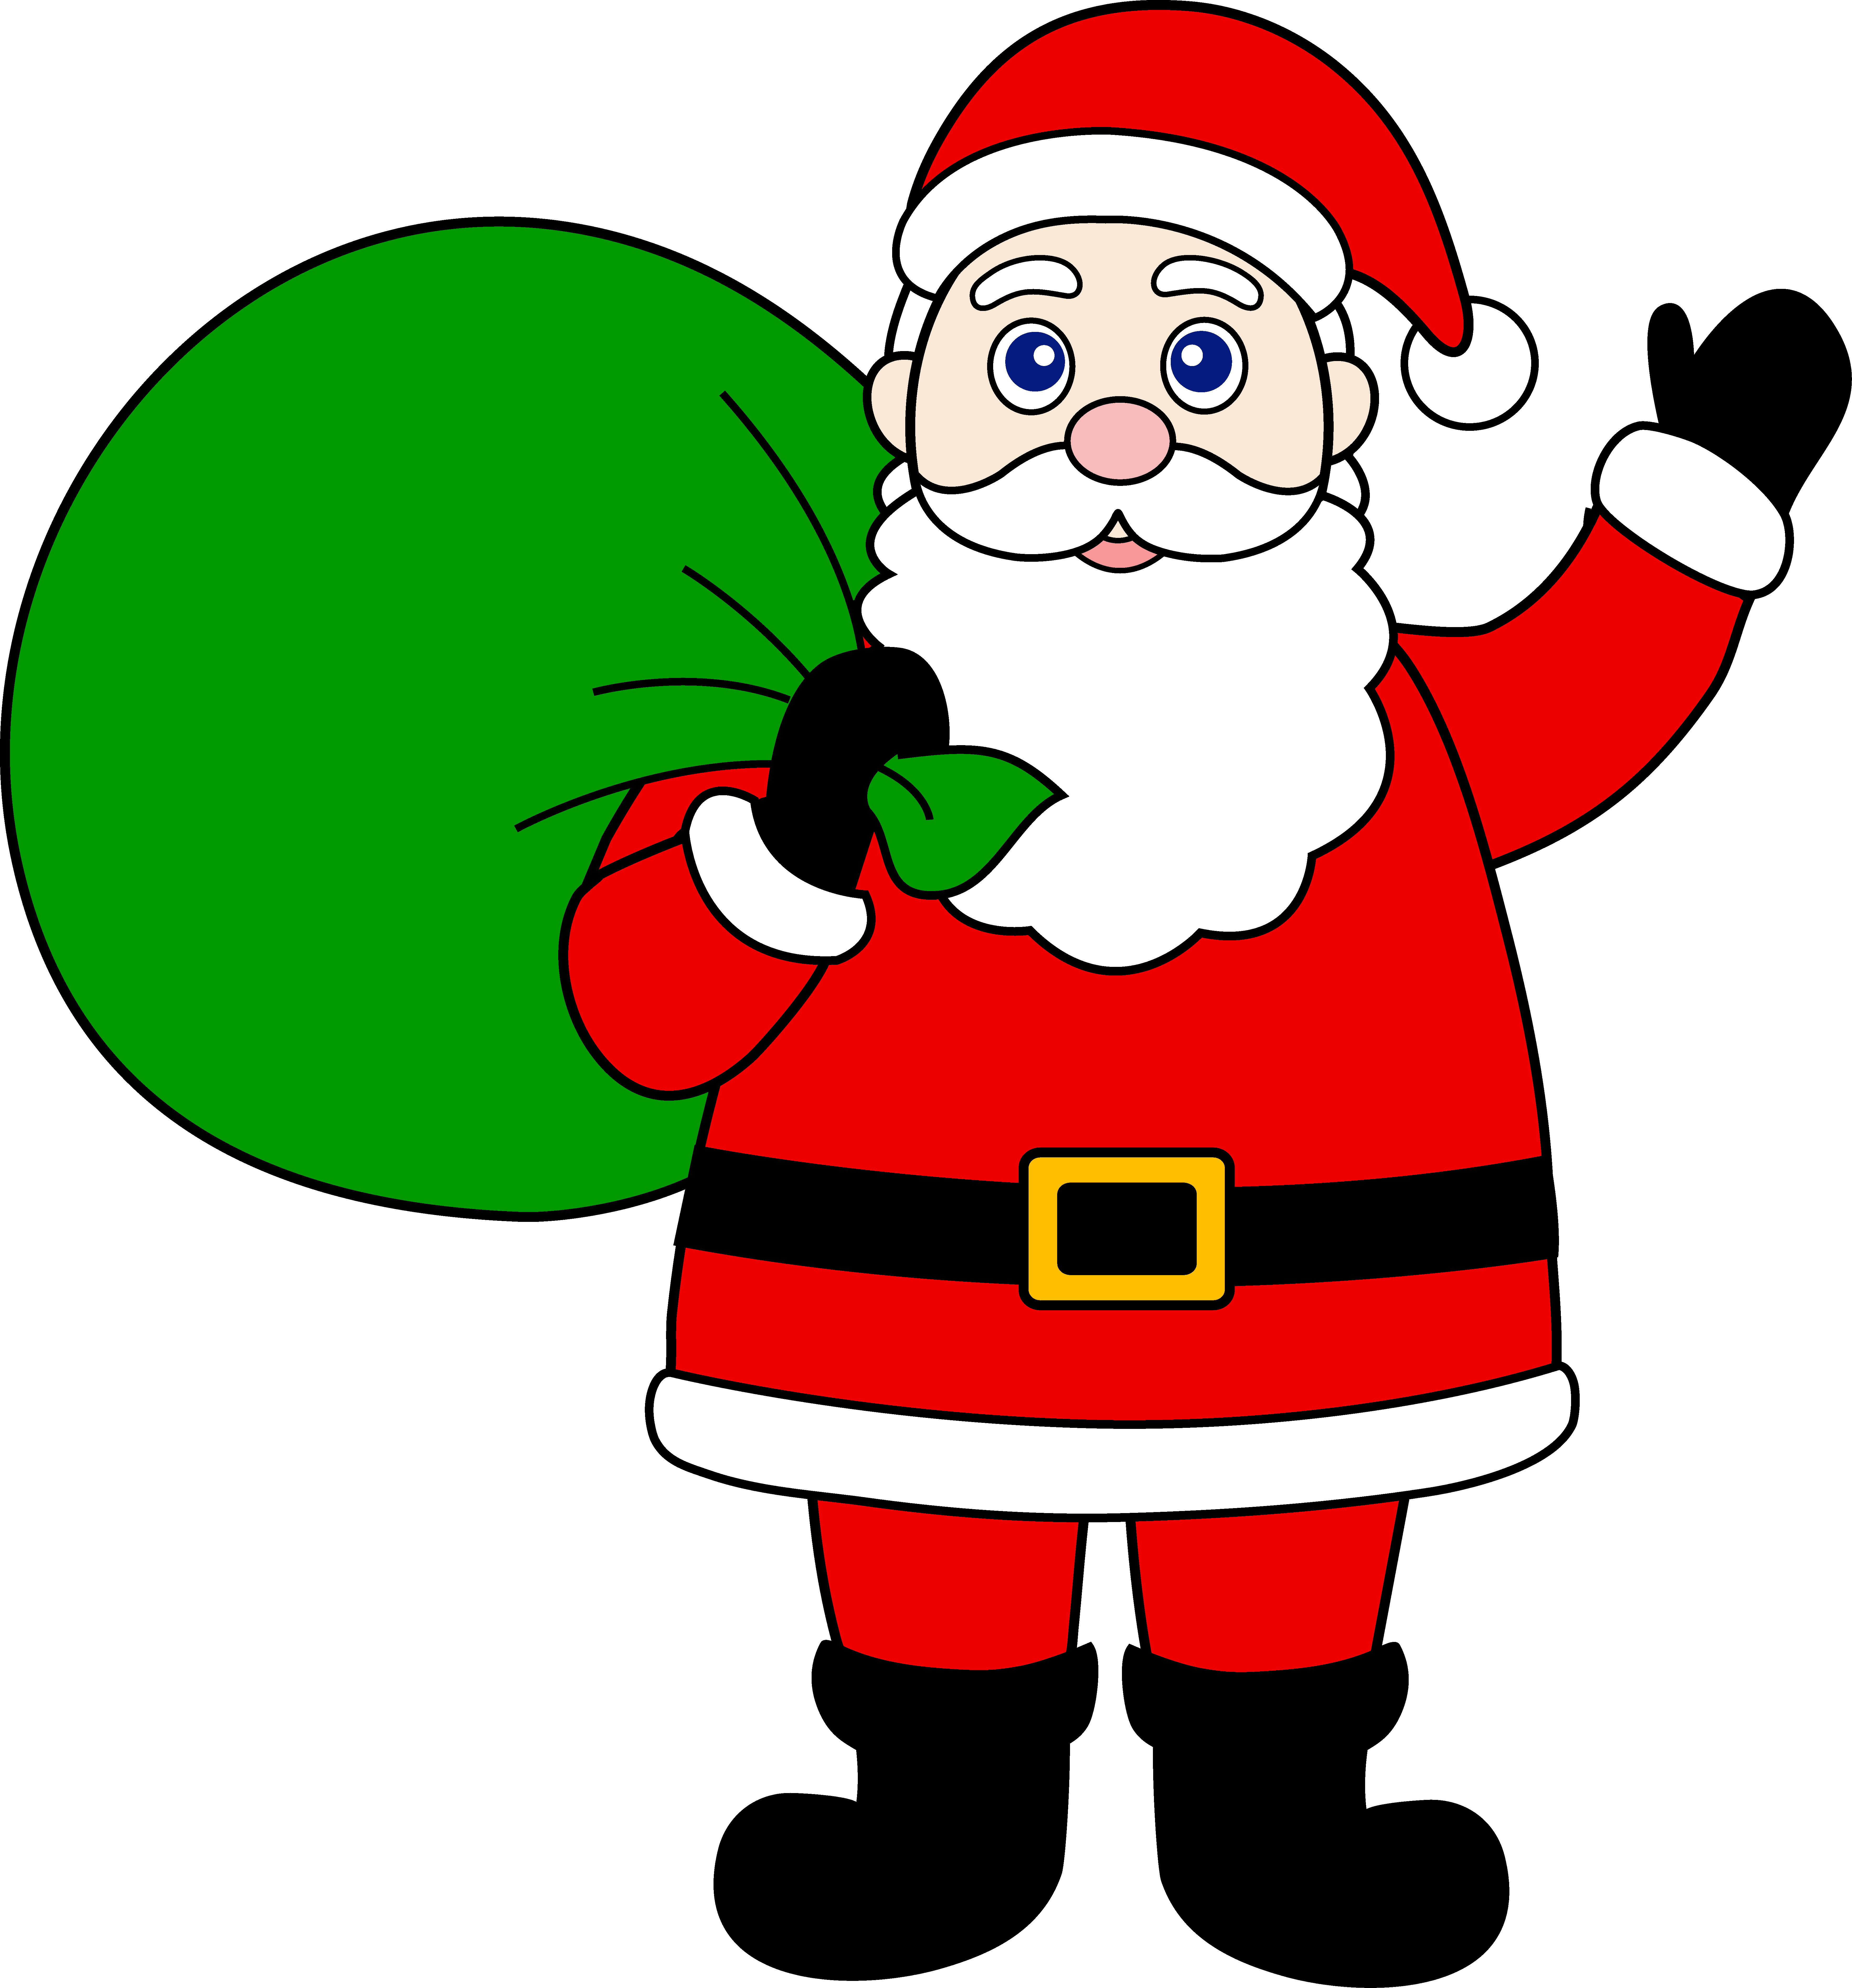 Cartoon santa claus pencil. Bag clipart animated